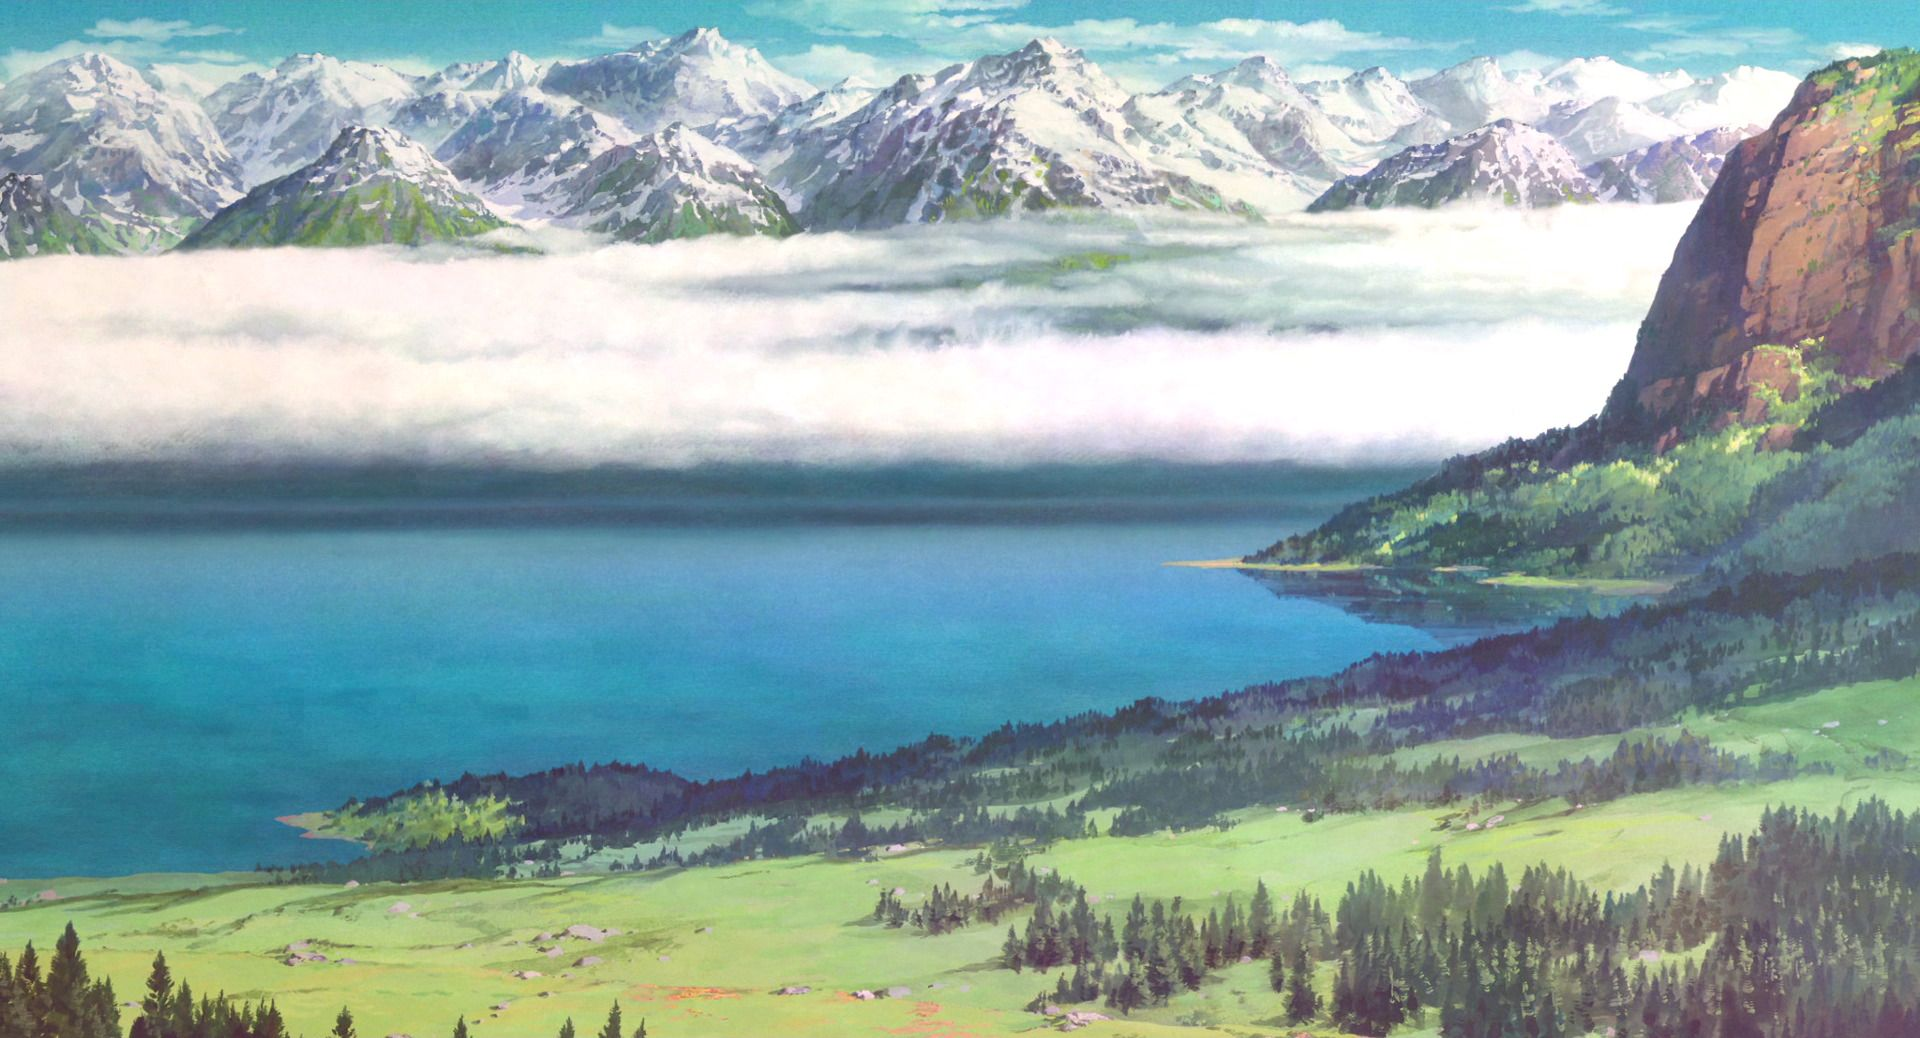 Pin by Silver Wolf on Anime Studio ghibli background